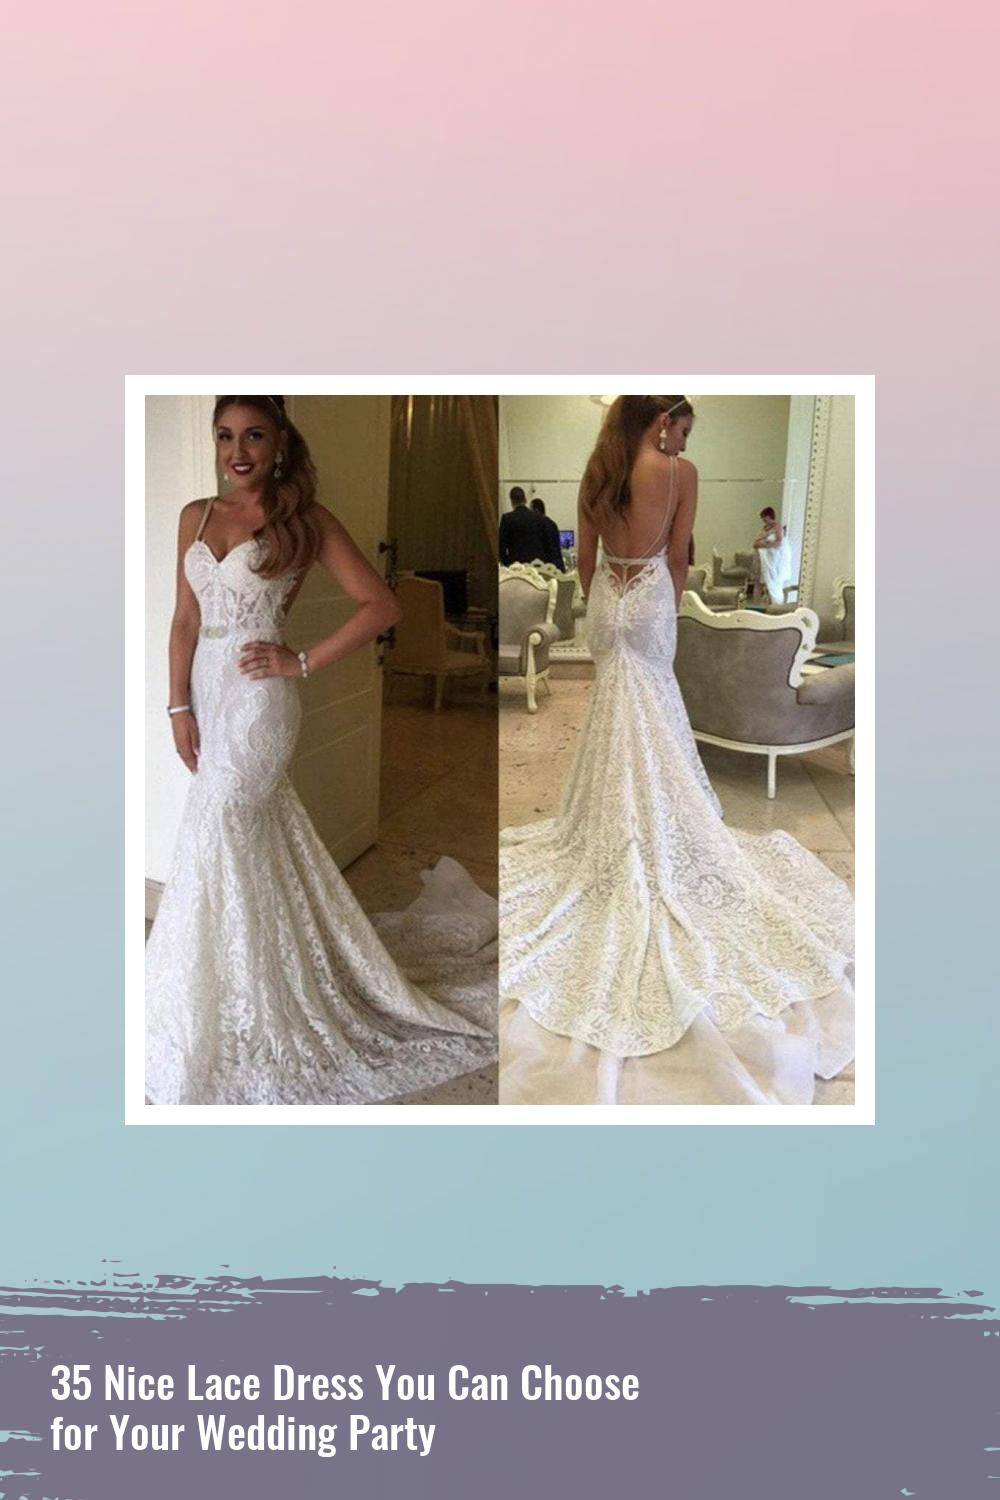 35 Nice Lace Dress You Can Choose for Your Wedding Party 12